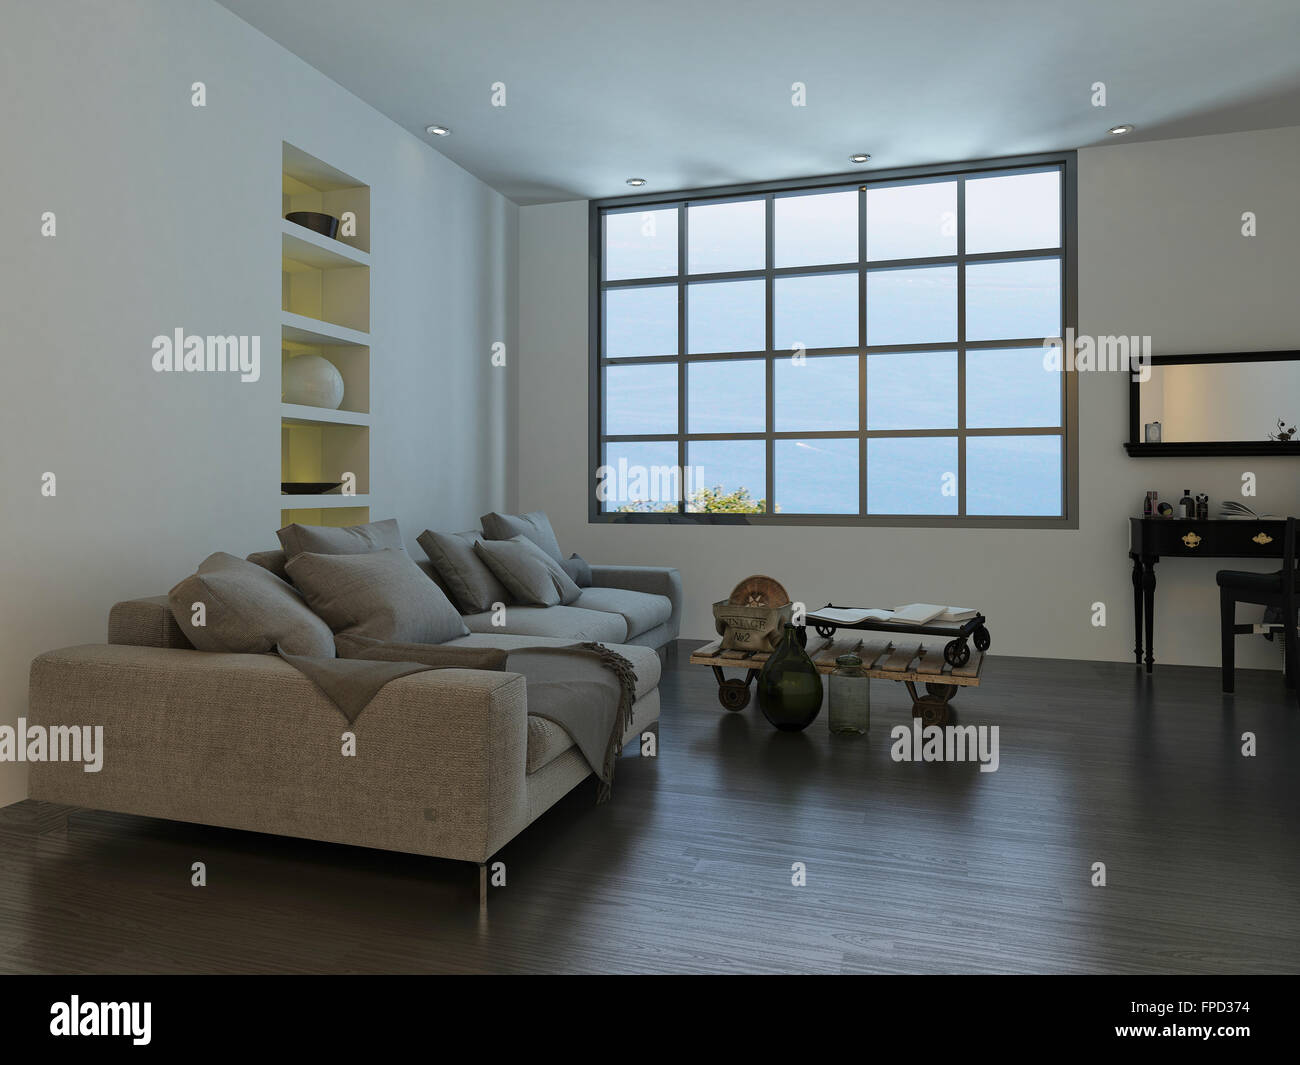 Living room with a large cottage-pane style window and a large white sofa with decorative ornaments, recessed shelves - Stock Image